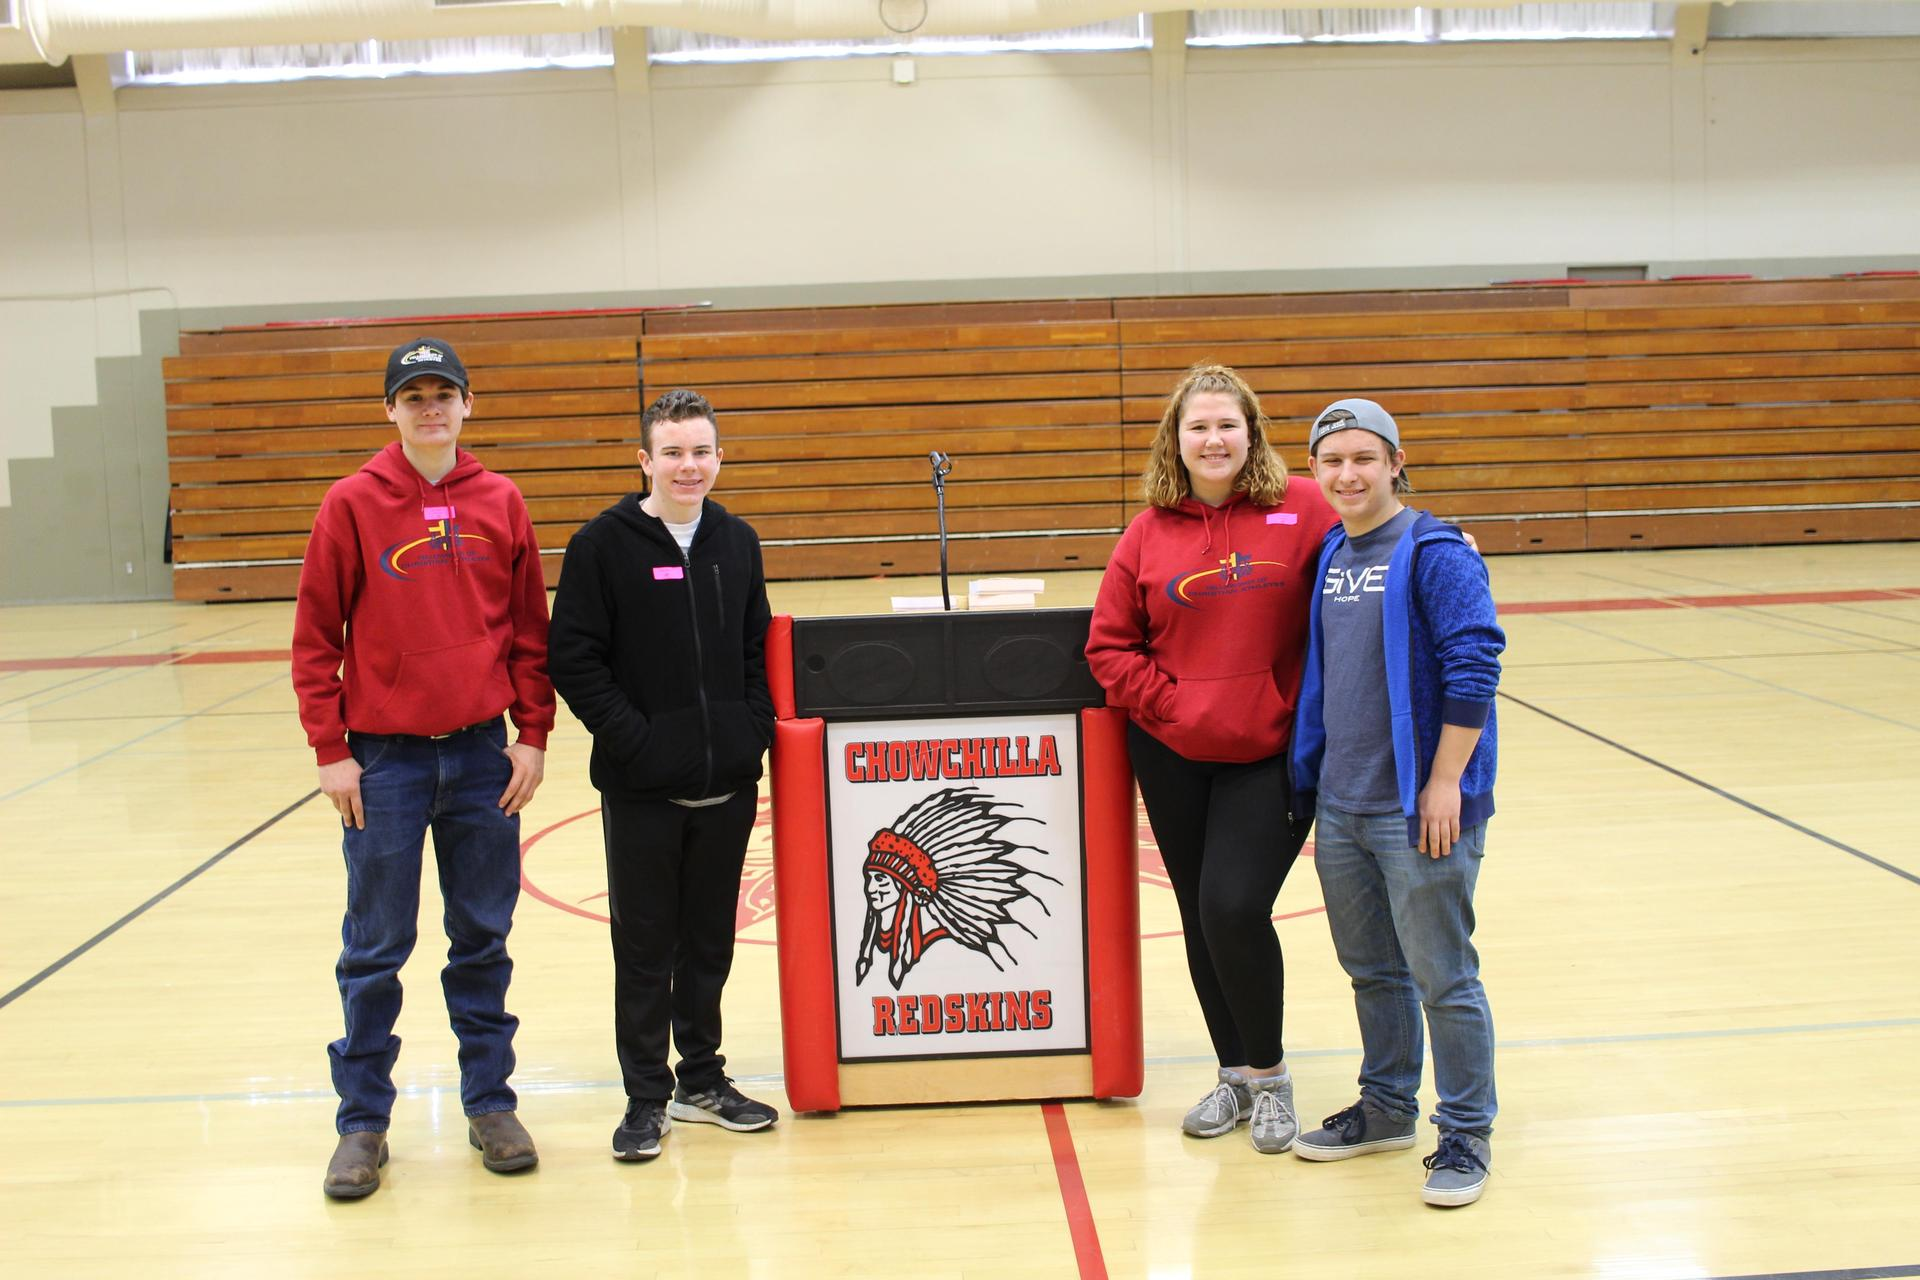 FCA Officers Tyler Henson, Micah Trujillo, Annie Jackson and Andrew Simon posing after the rally